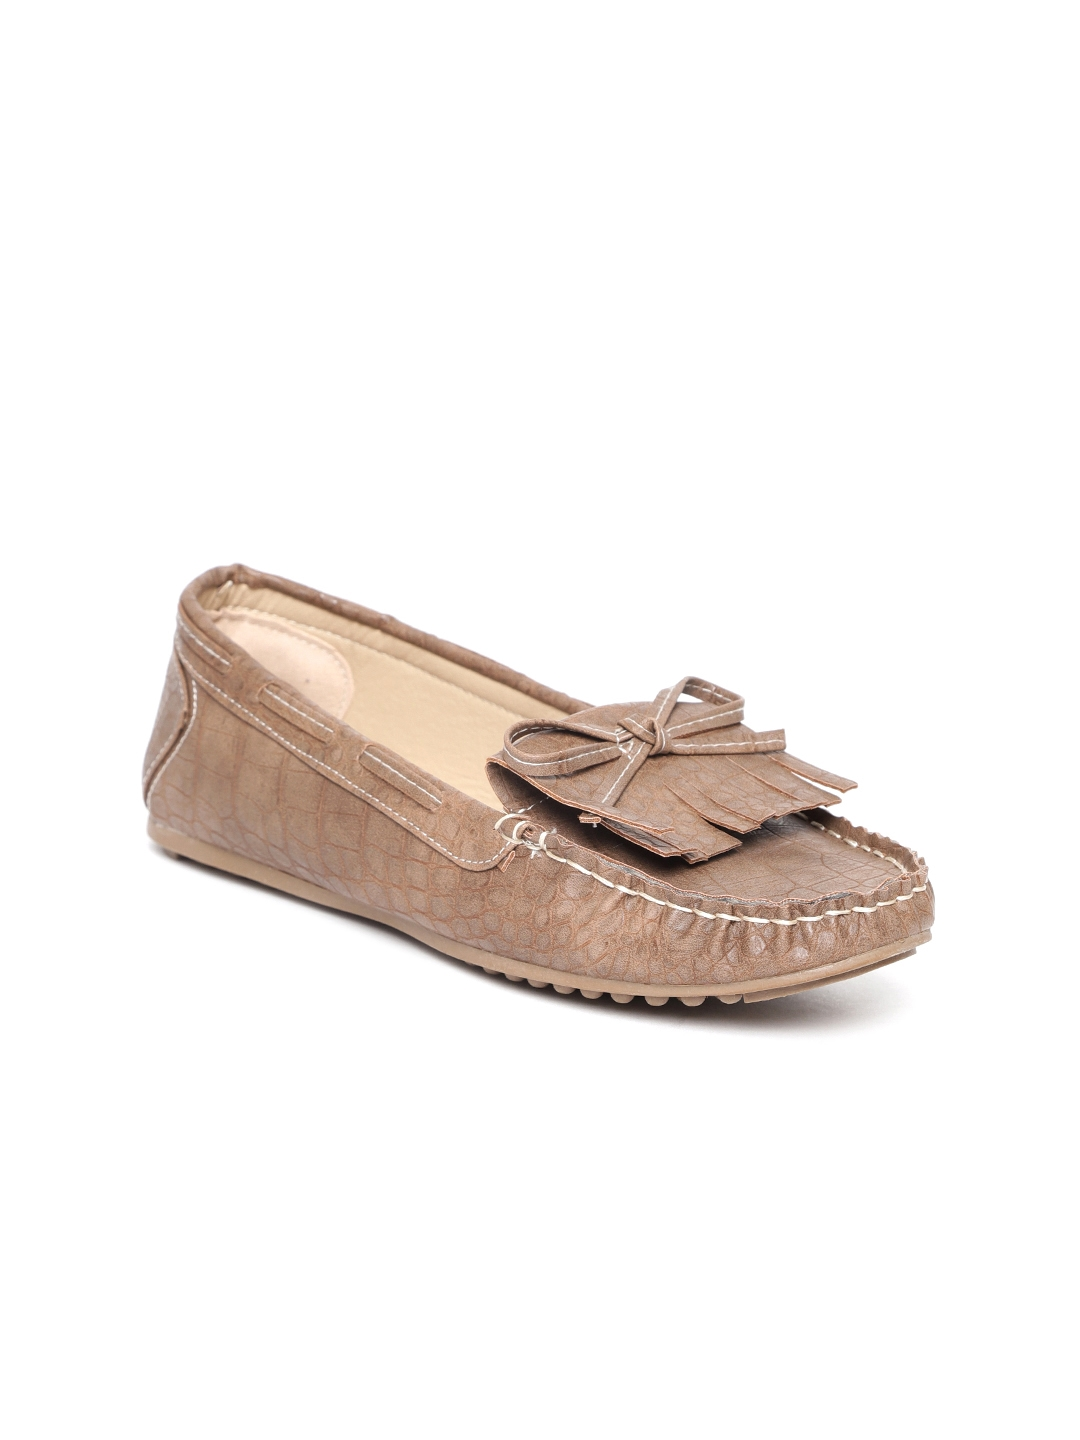 badb8b7cc Buy Catwalk Women Beige Croc Textured Loafers - Casual Shoes for ...